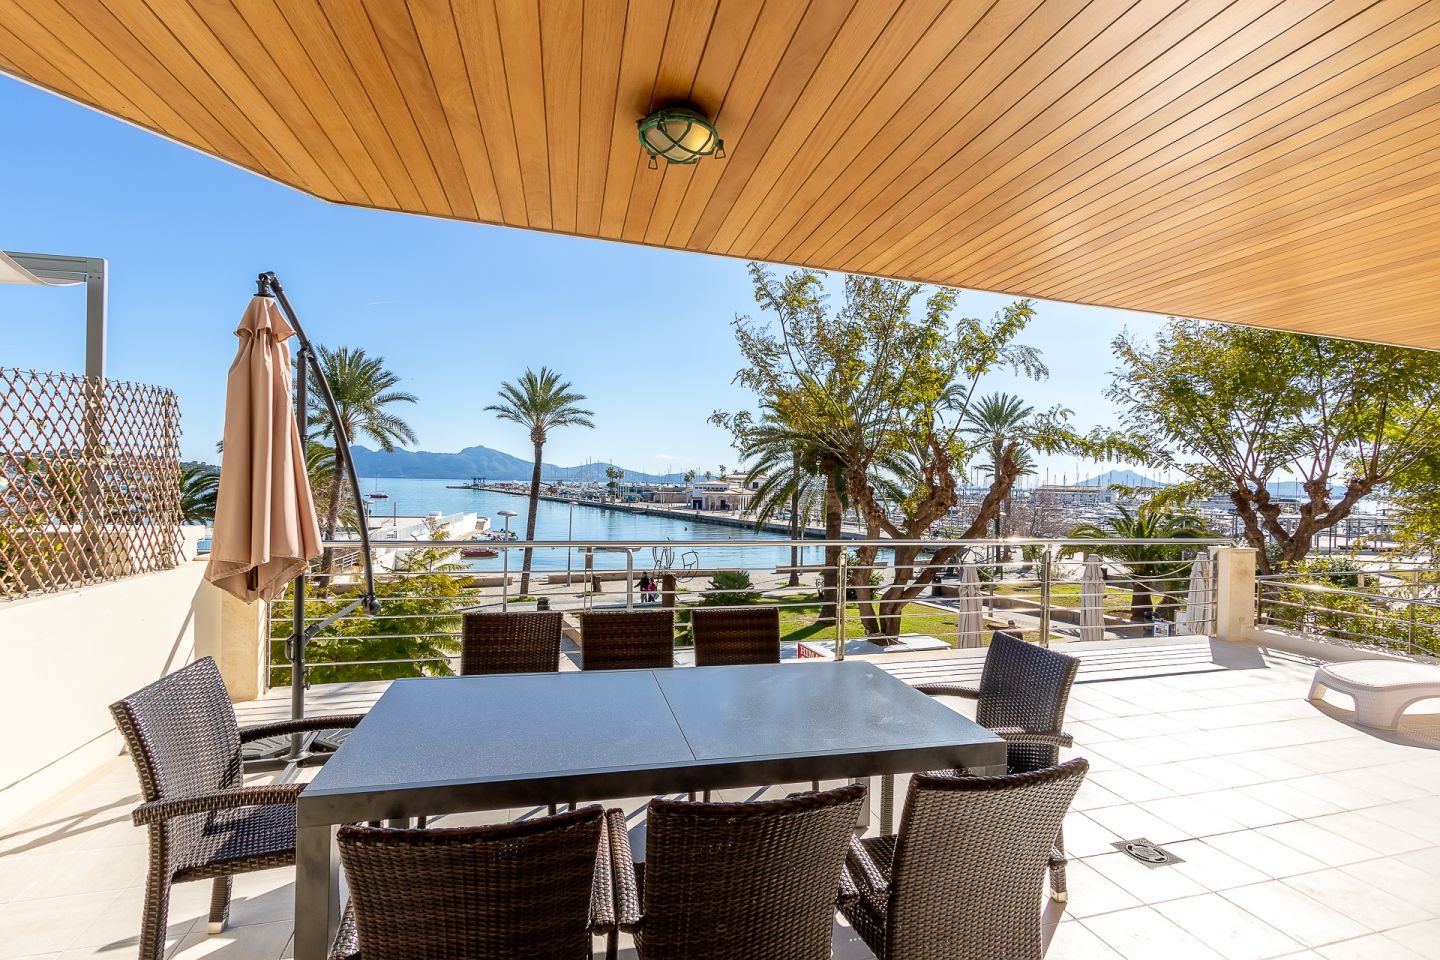 5 Bed Apartment for sale in Puerto Pollensa 2